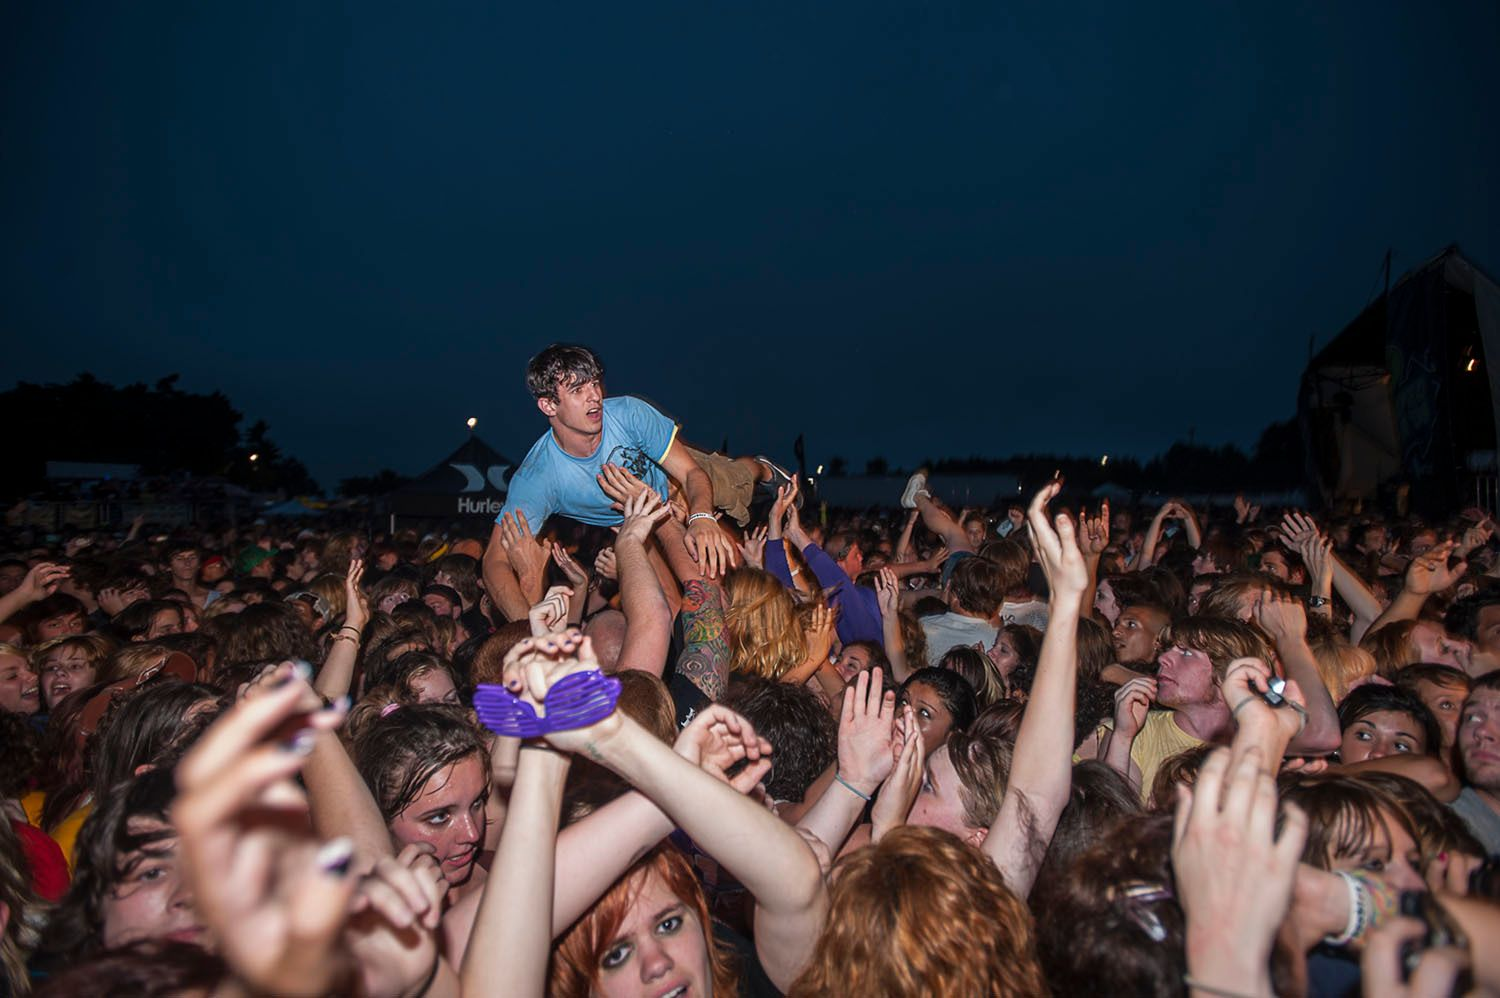 Crowd surfing at the concert